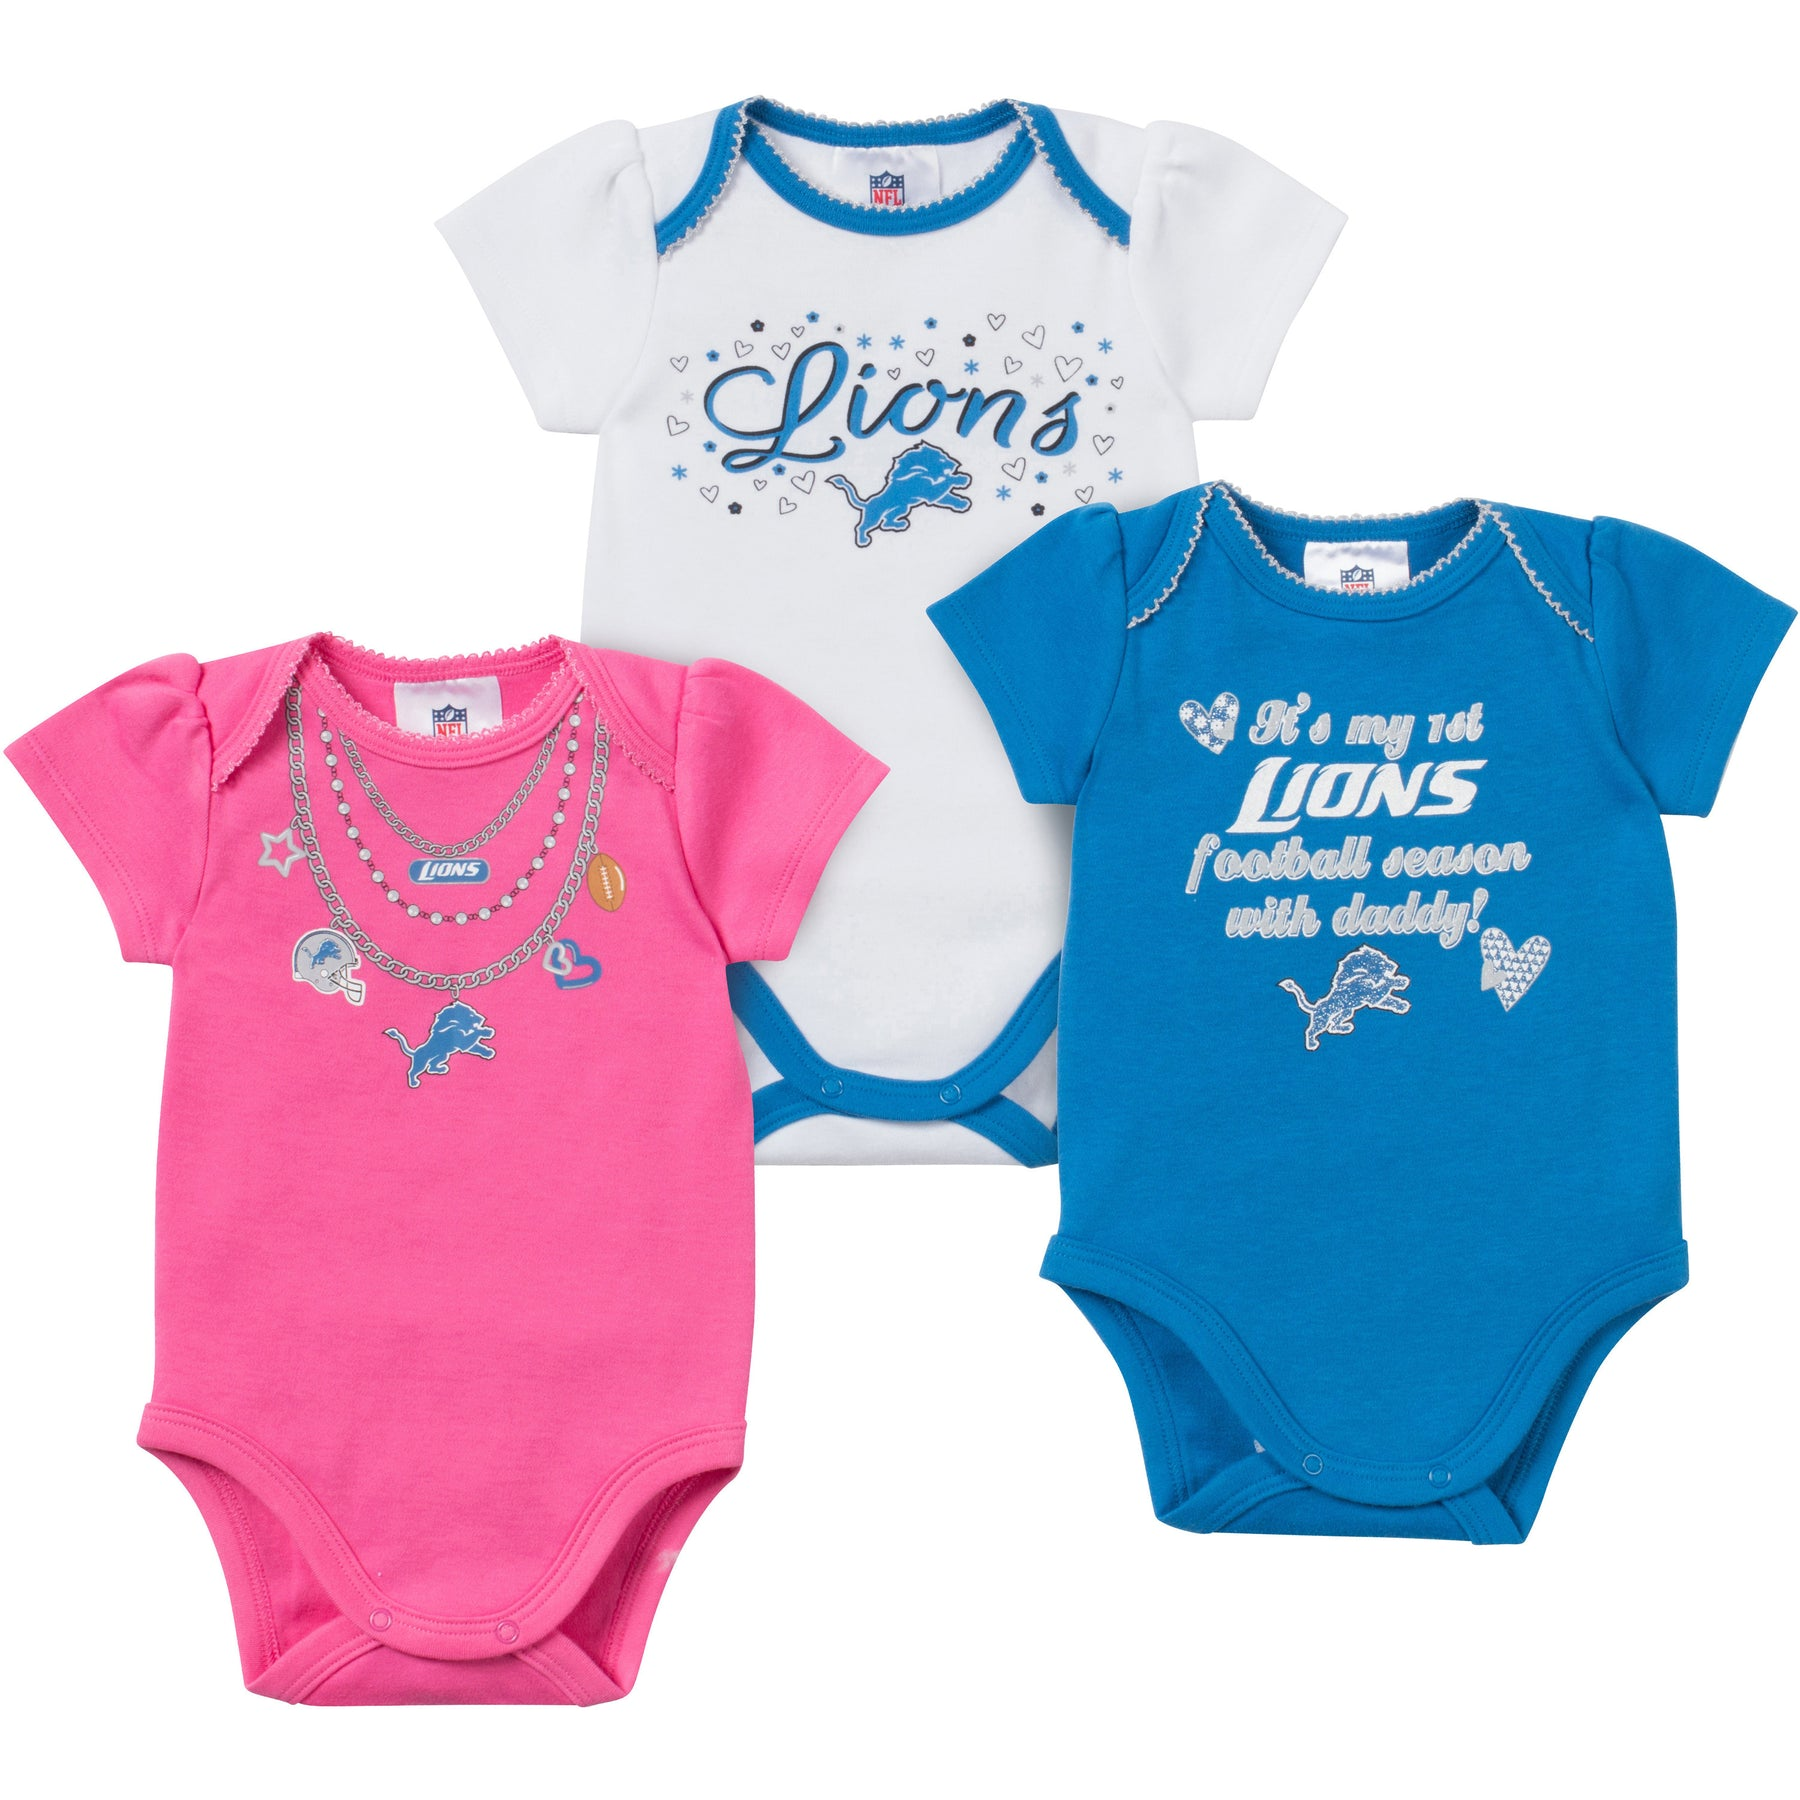 Detroit Lions Baby Clothing and Lions Infant Gear – babyfans